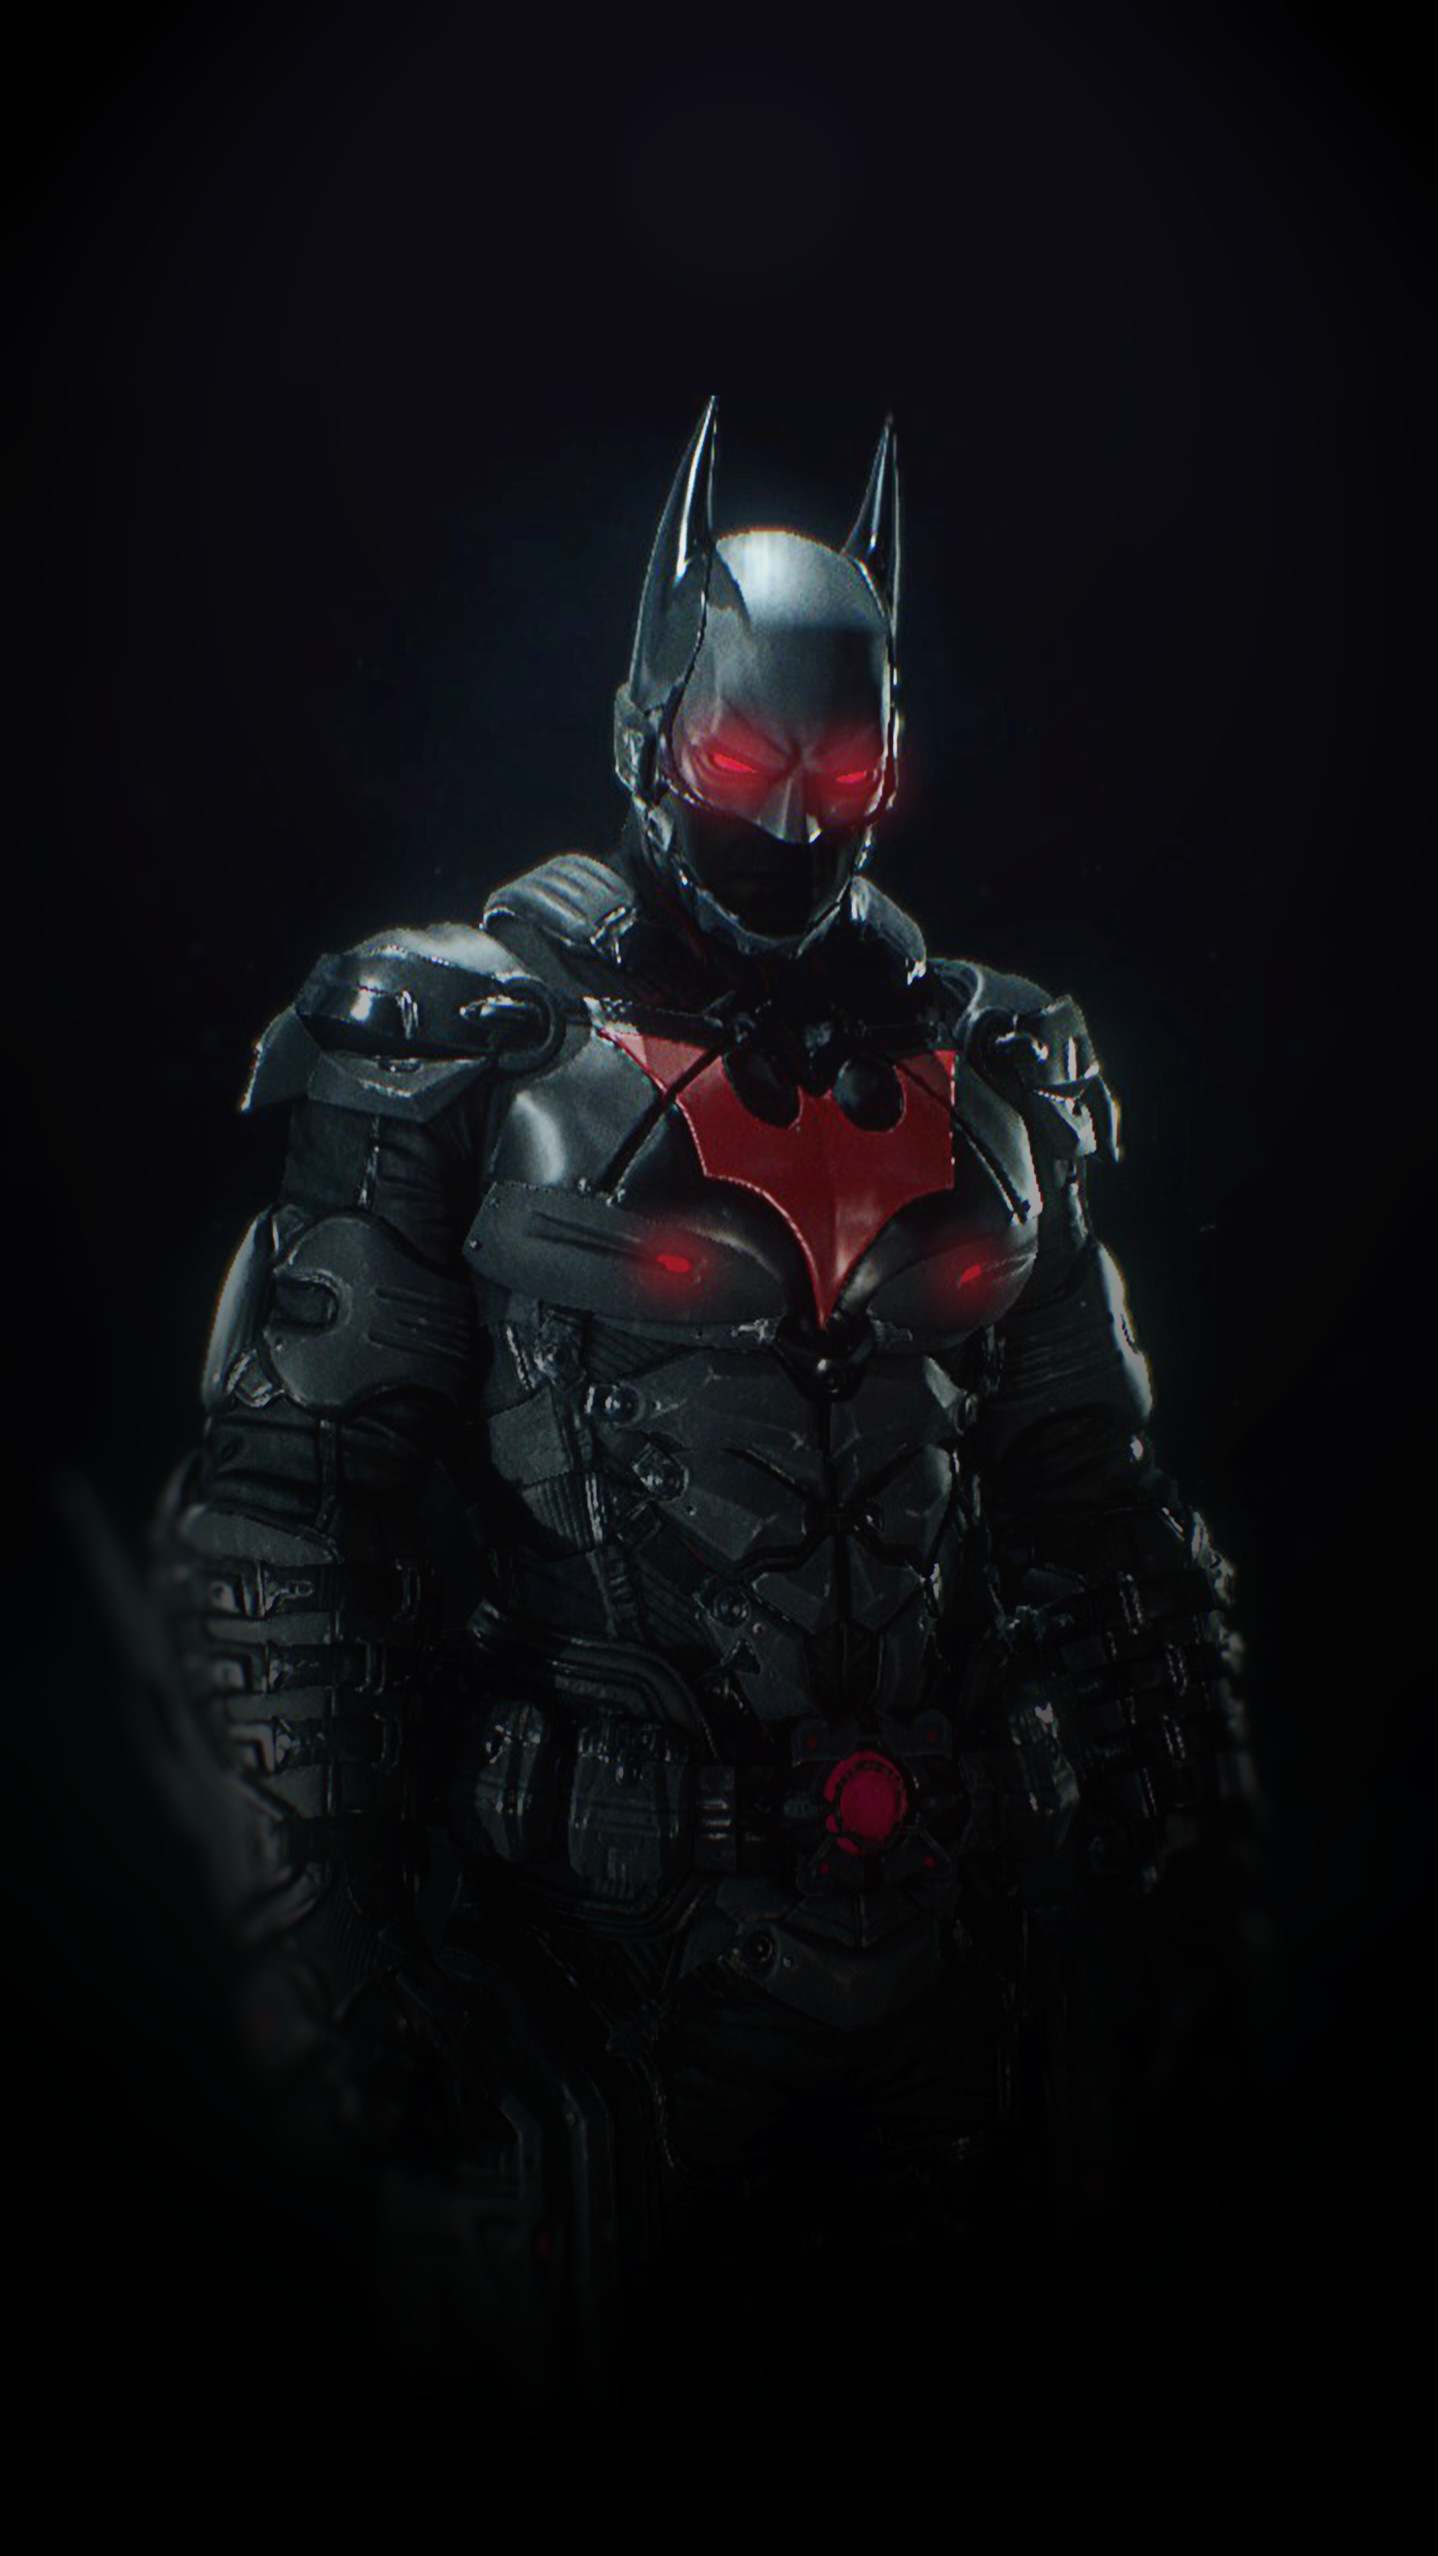 1438x2556 Batman Arkham Knight Suit : Batman Beyond Skin. A wallpaper made by me for  smartphones in highest quality as possible i could make.